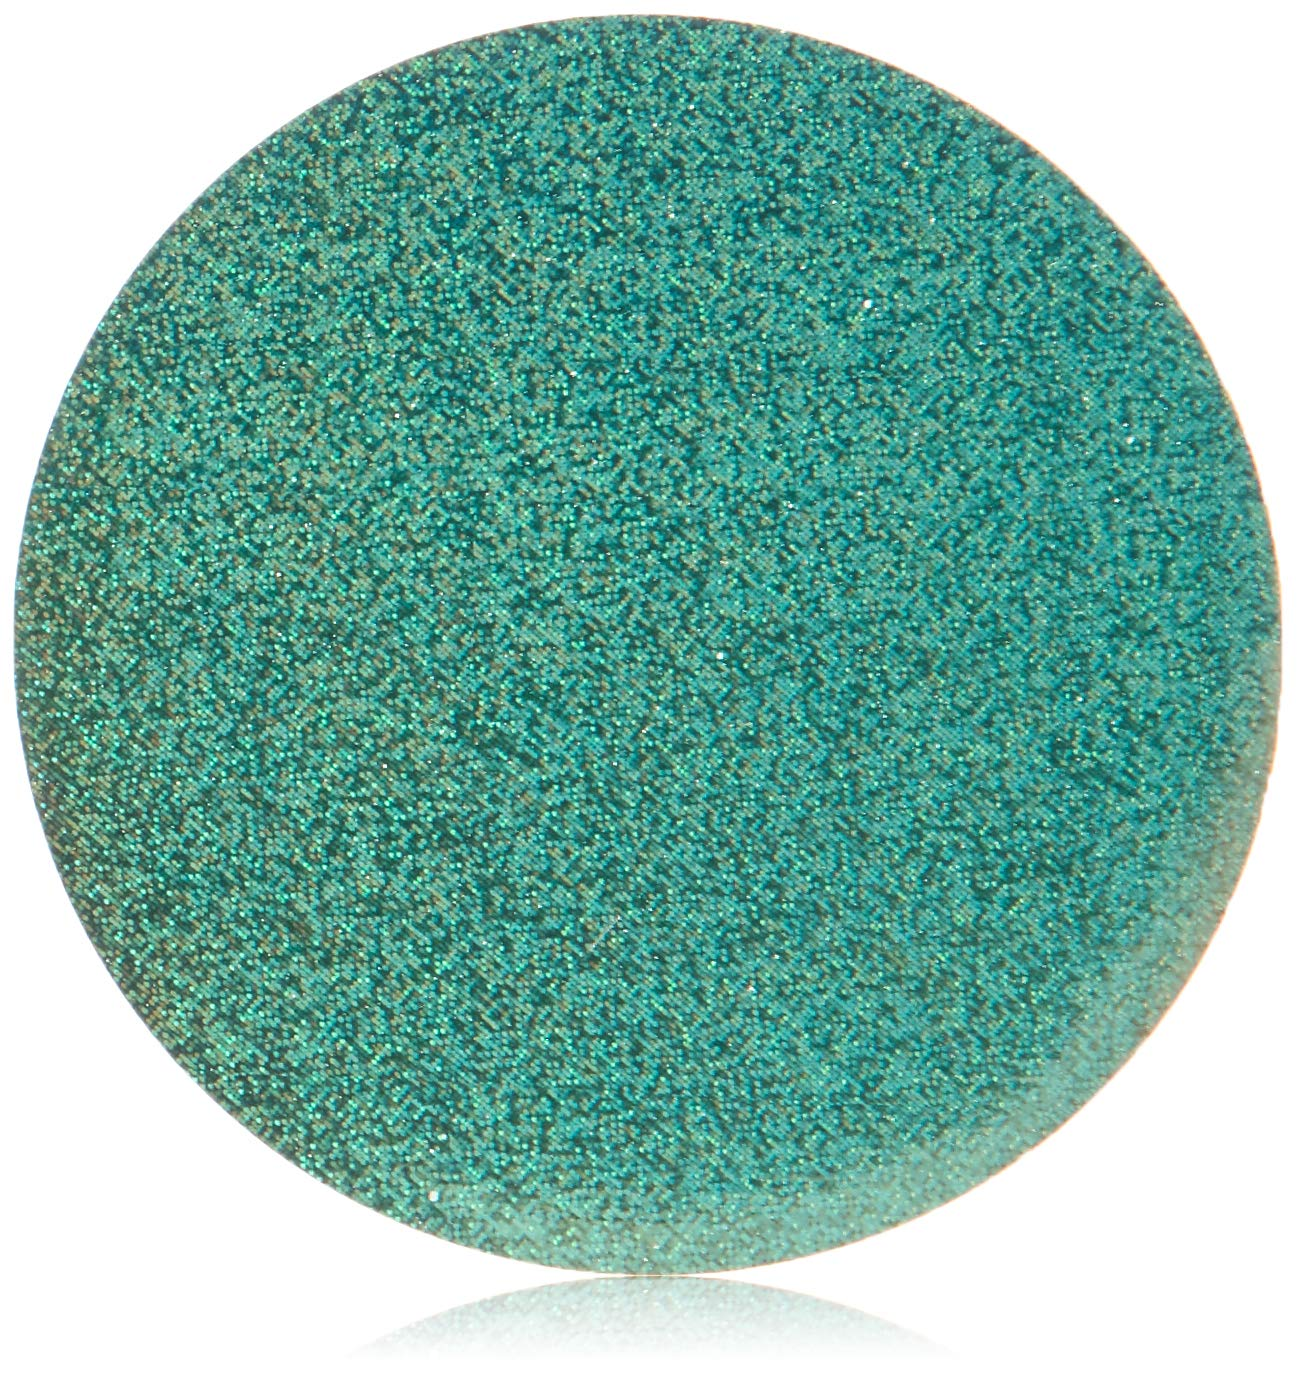 Mettoo Green Holographic Sparkle Body Foil Festival Pro, 1000 Count by Mettoo